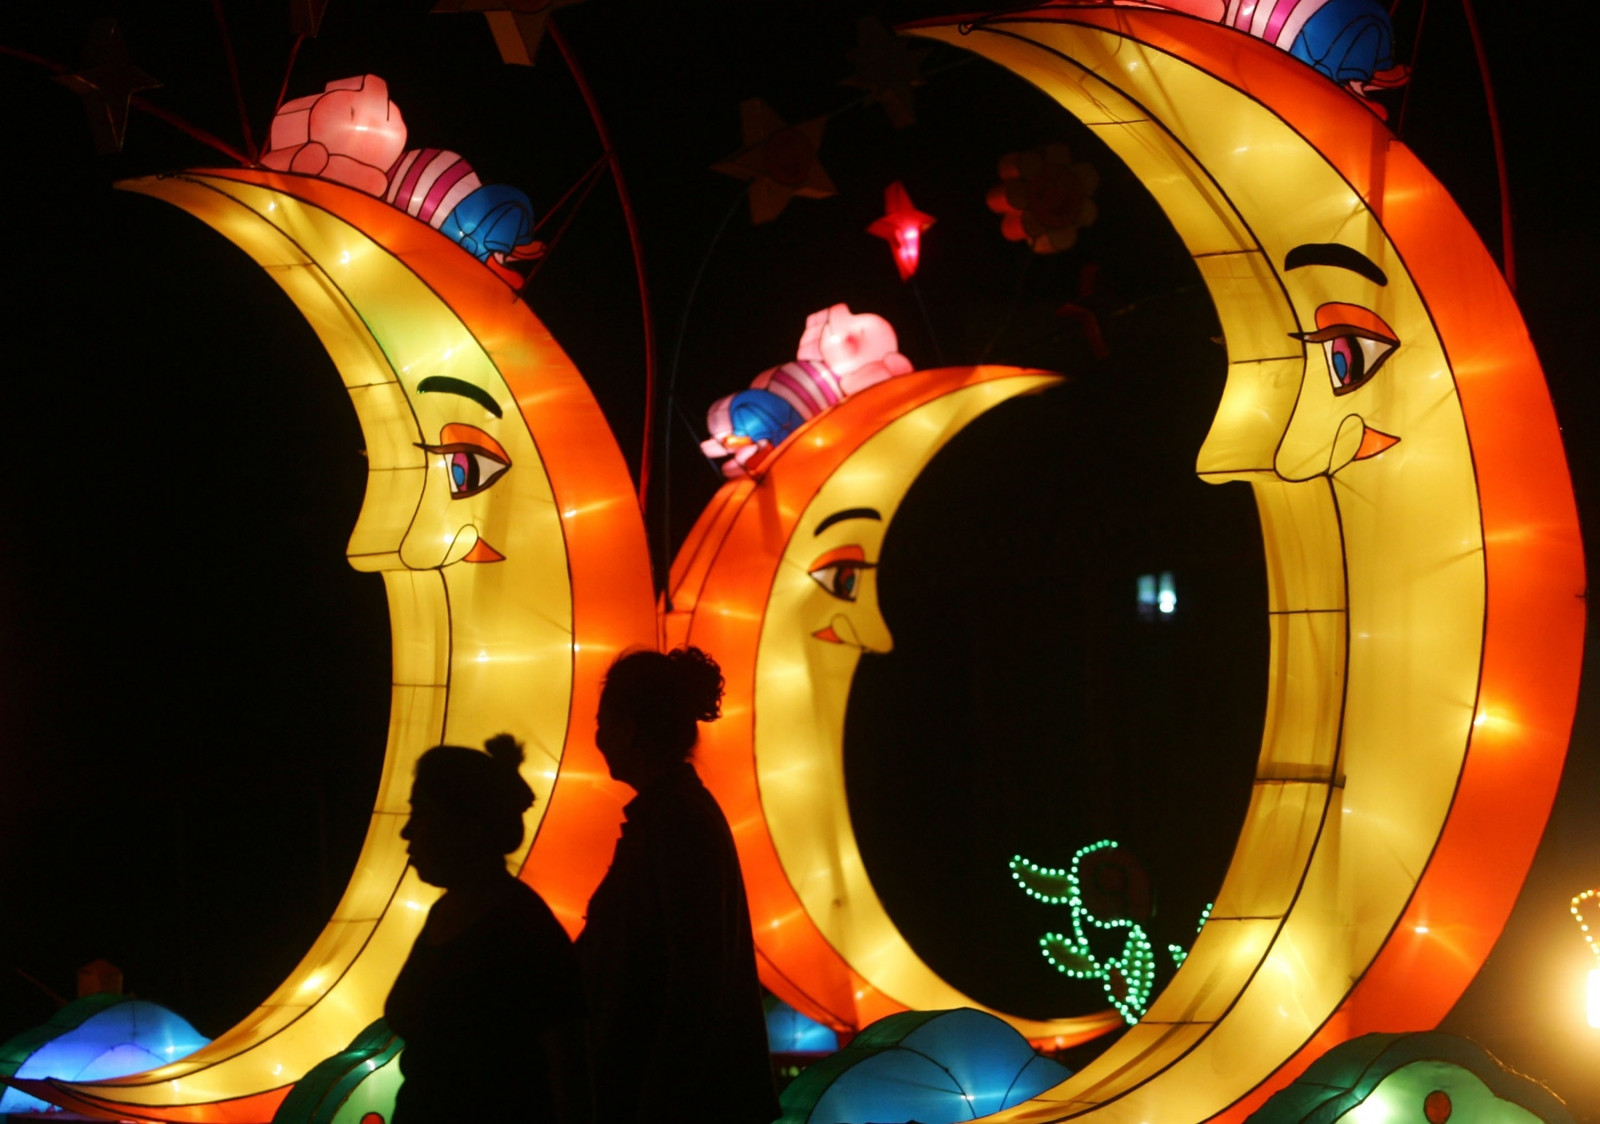 chinese moon festival - HD1600×1124